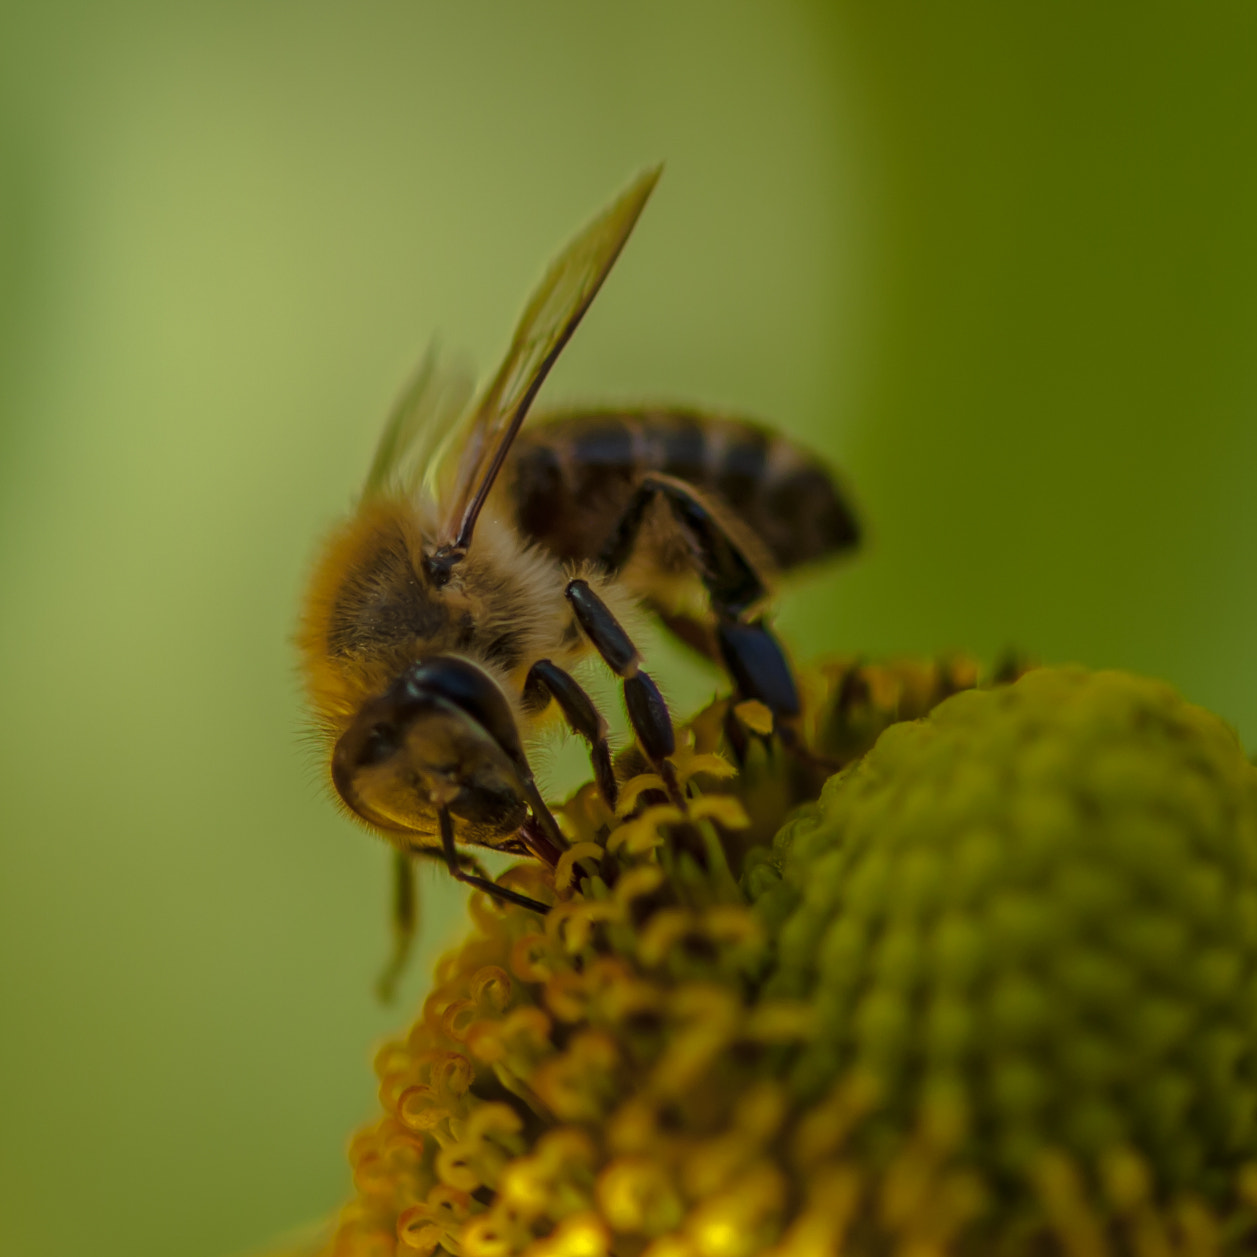 Photograph Bees by jorgen norgaard on 500px